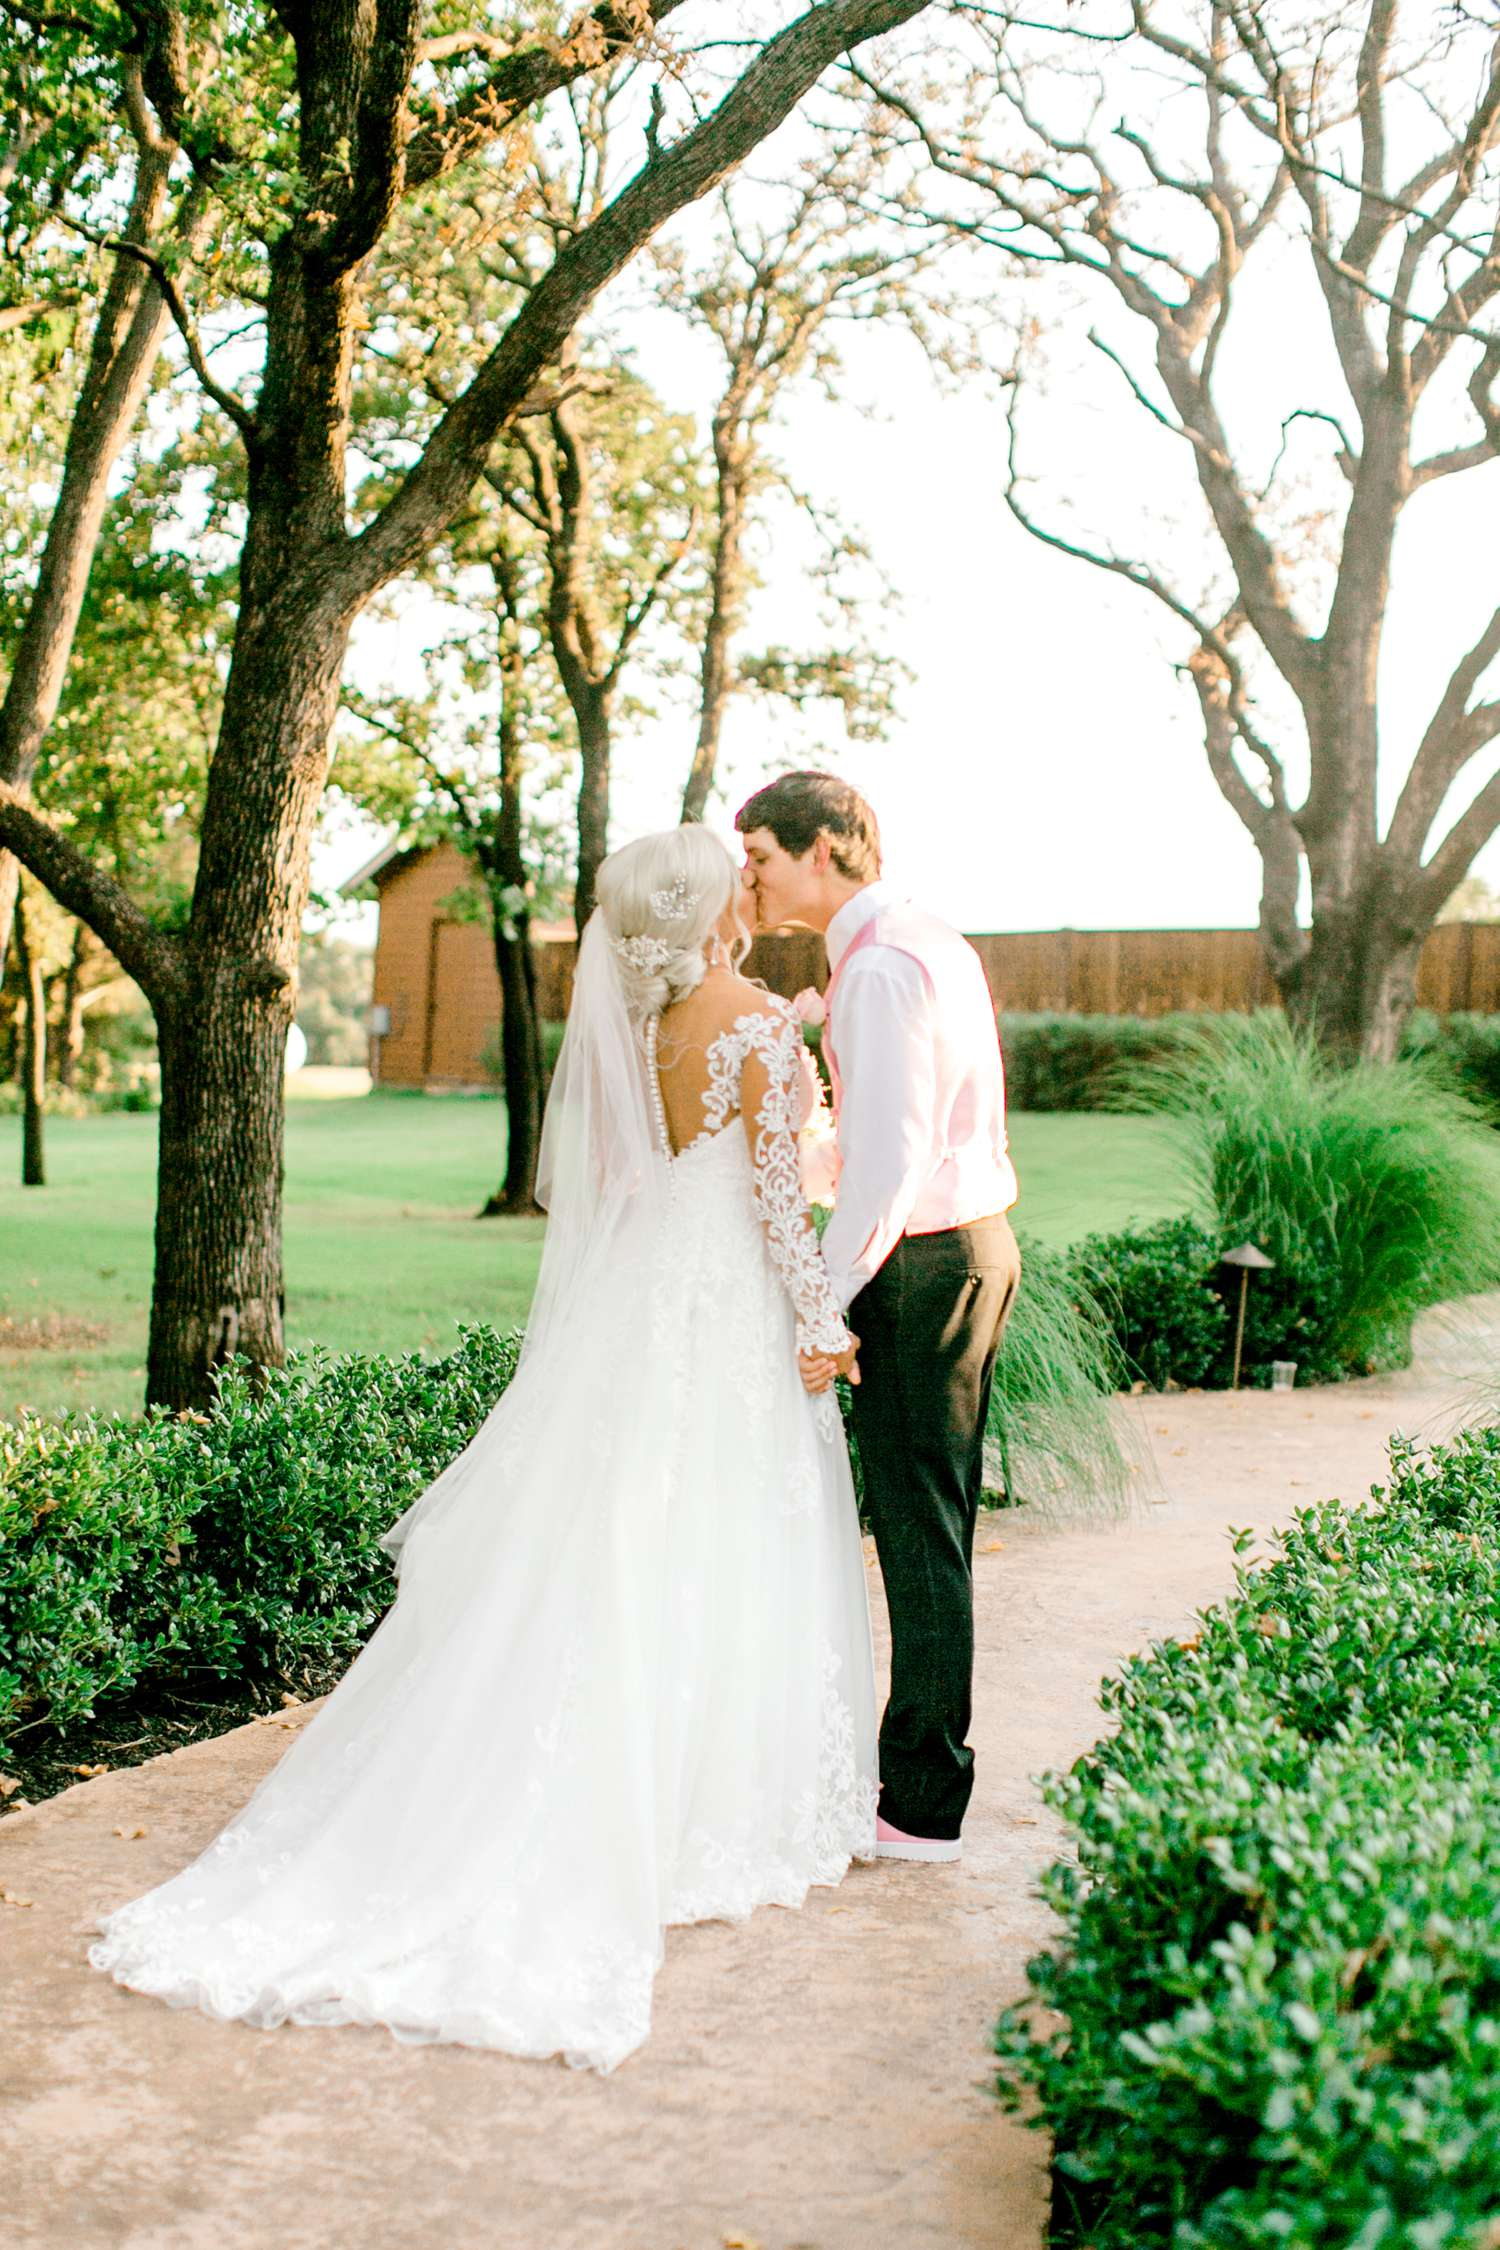 JESSICA+LYLE+NEEL+THE_SPRINGS_EVENTS_WEDDING_OKLAHOMA_ALLEEJ_PHOTOGRAPHER_0097.jpg